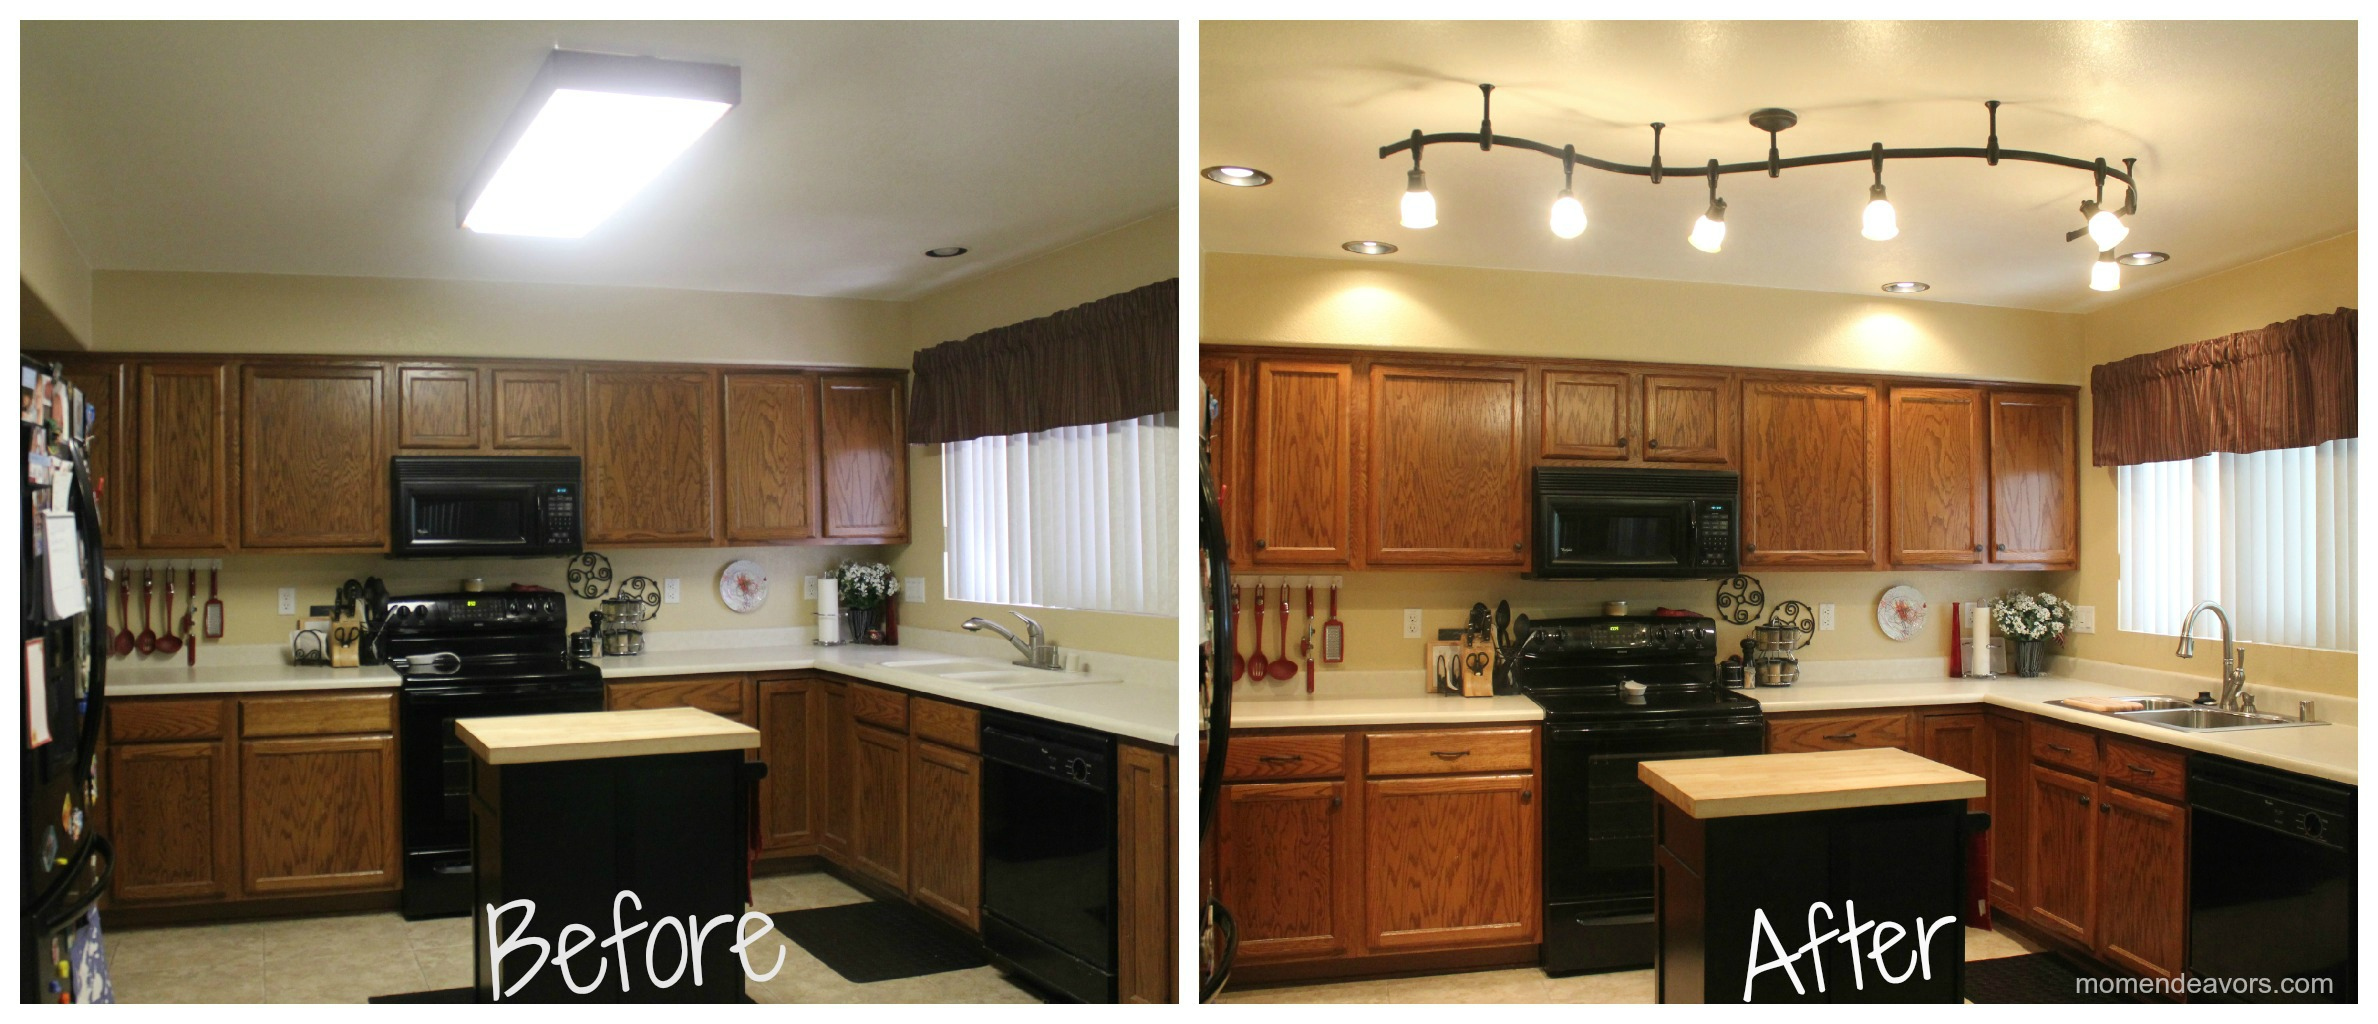 Recessed Lights In Kitchen Mini Kitchen Remodel New Lighting Makes A World Of Difference